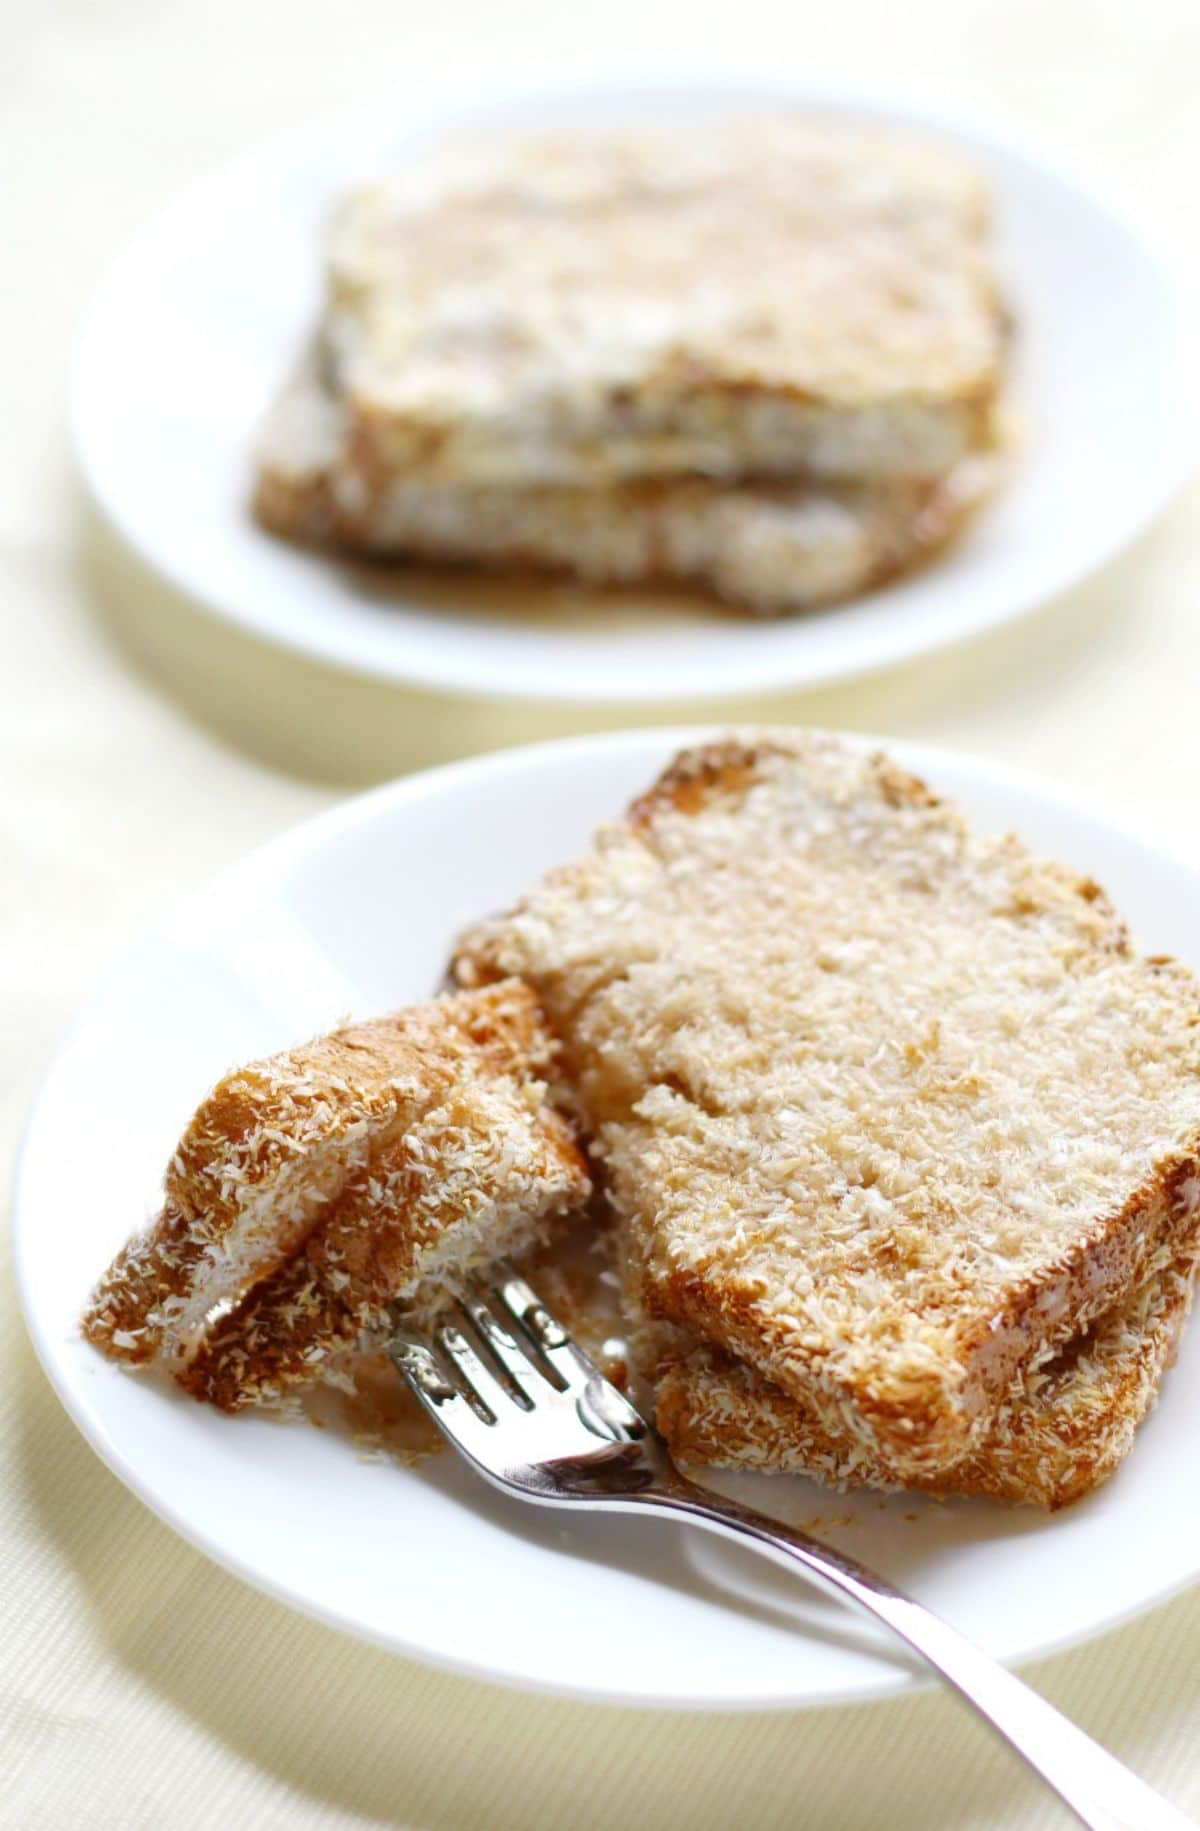 2 plates of coconut french toast. The nearest plate has a fork sticking into a portion of the slice